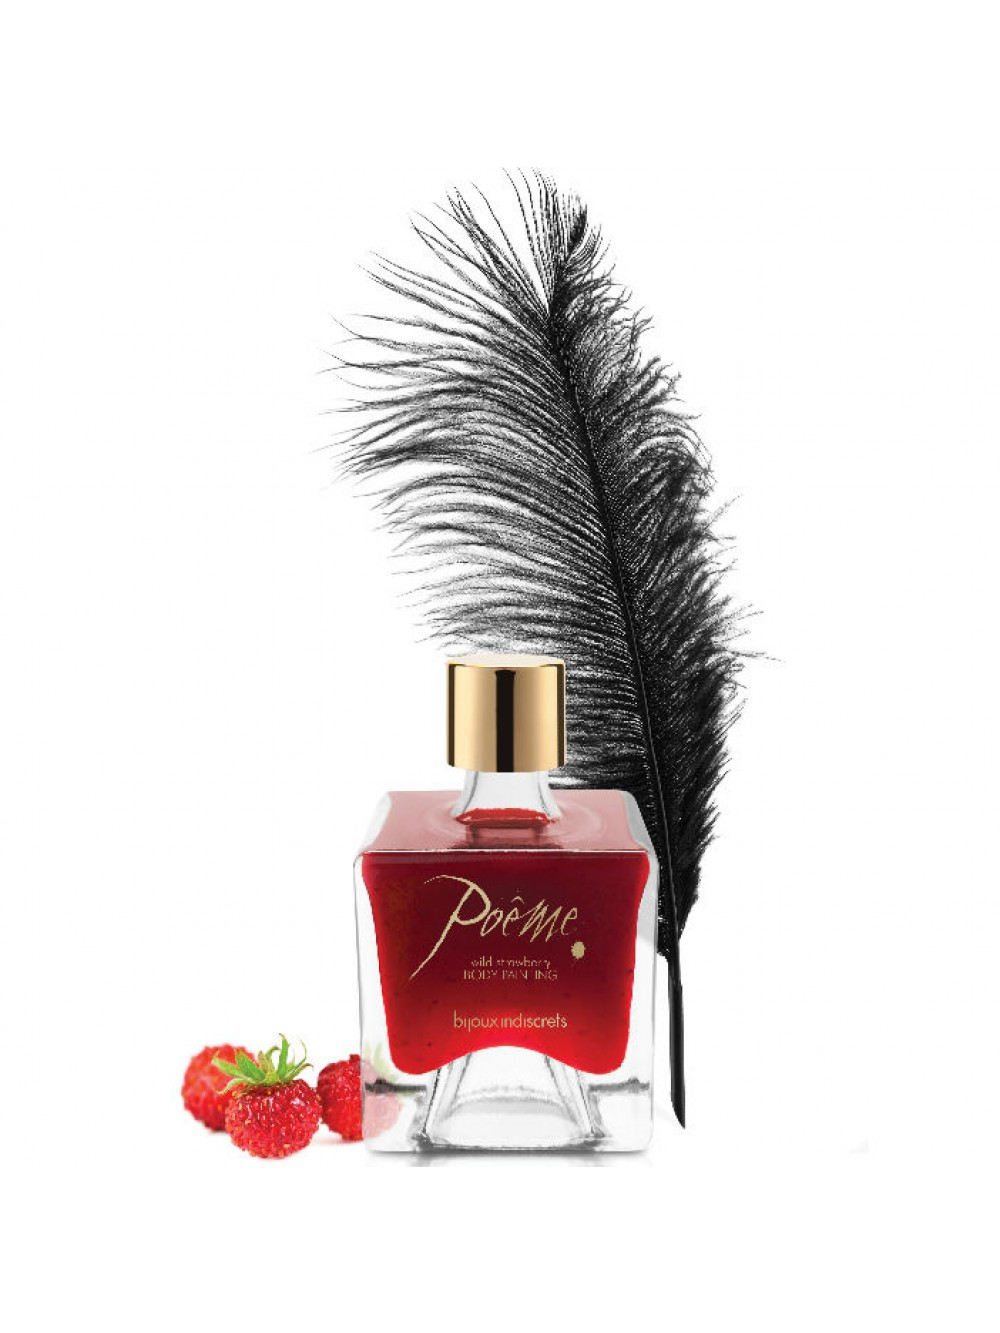 POEME BODY PAINTING WILD STRAWBERRY 8436562010034